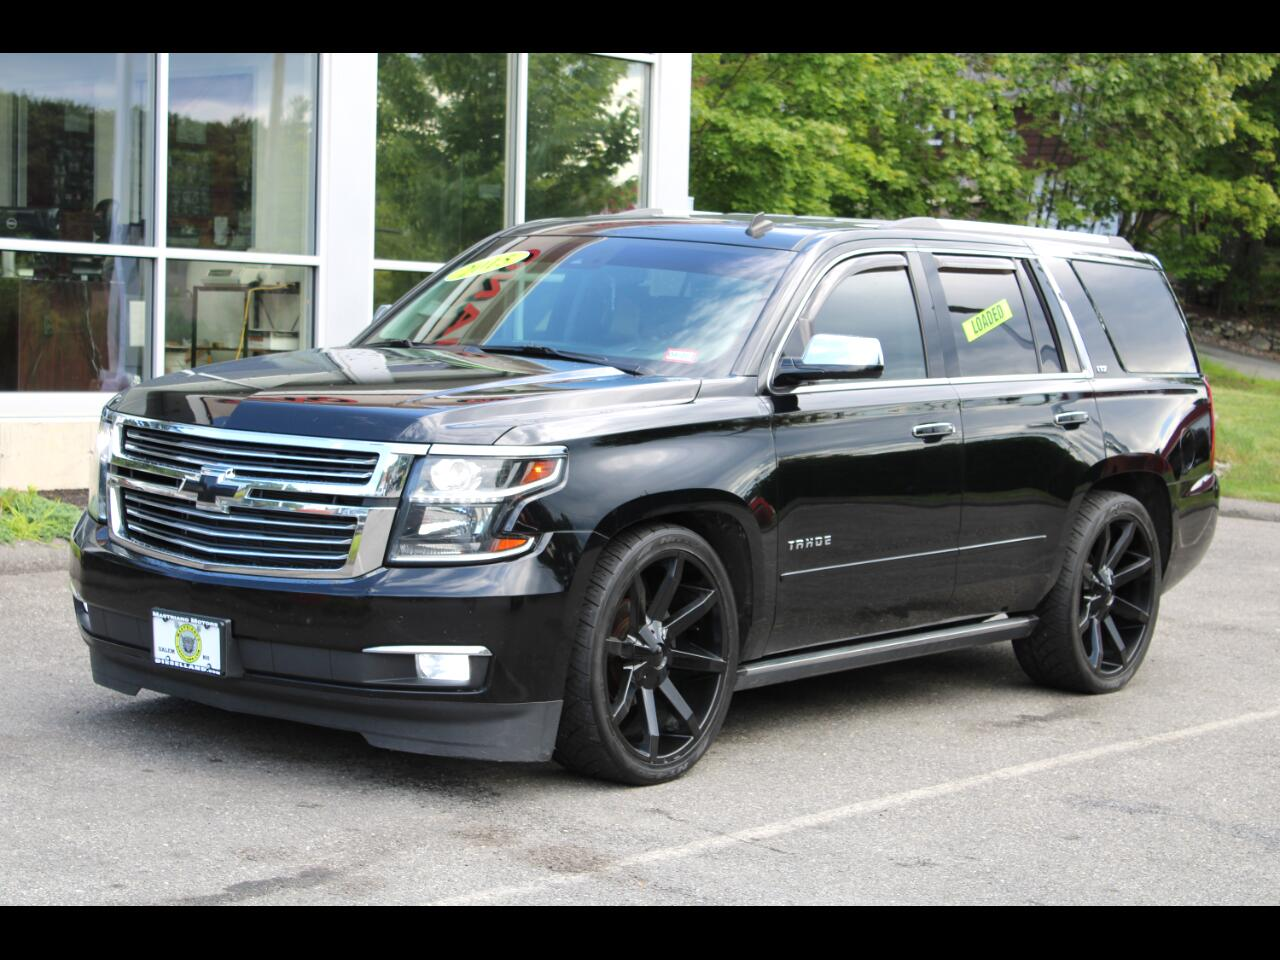 2015 Chevrolet Tahoe LTZ LOADED ALL THE OPTIONS !! 24 INCH WHEELS !!